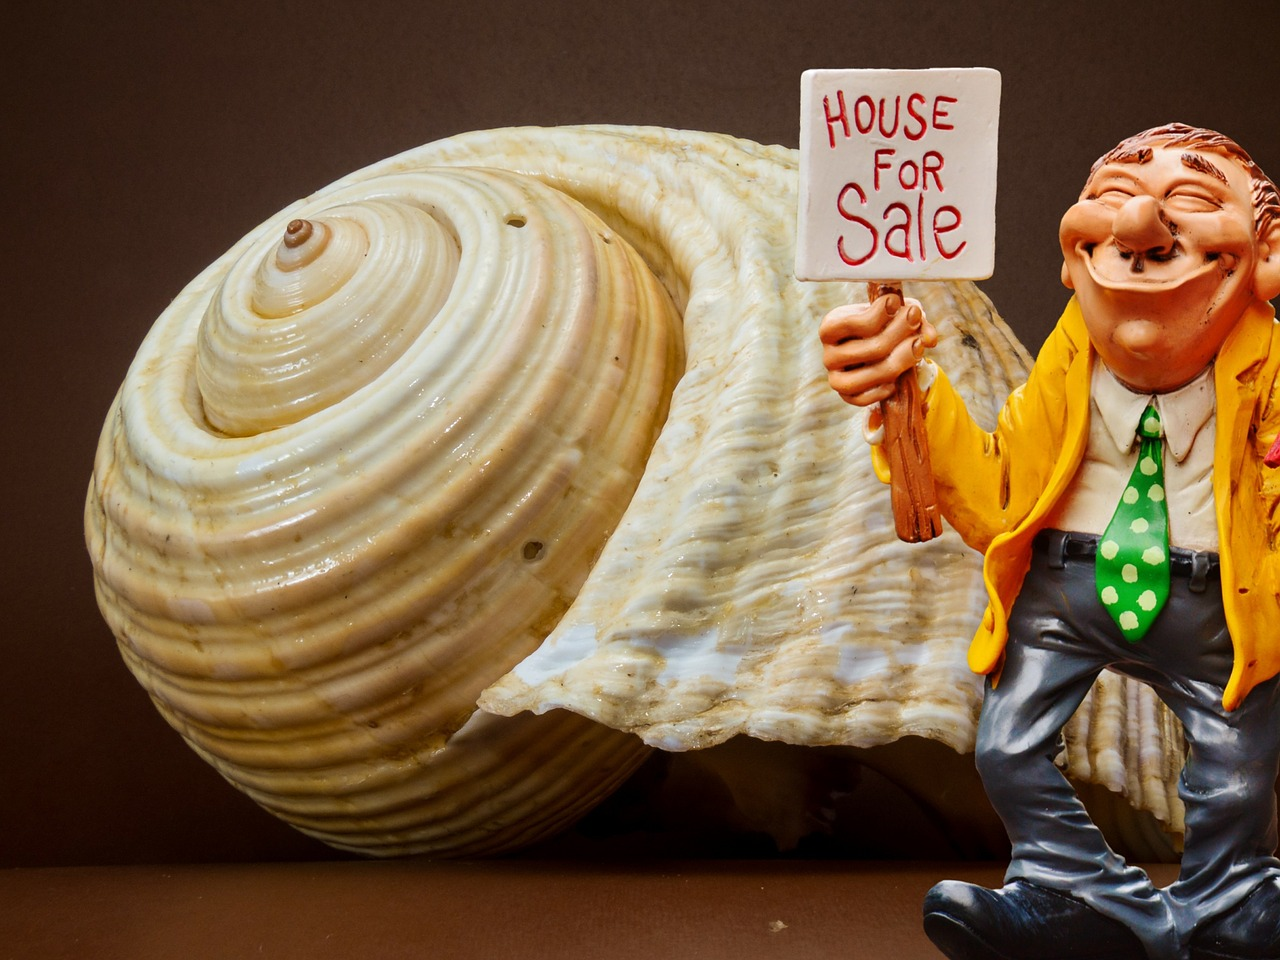 real estate agents shell sell free photo